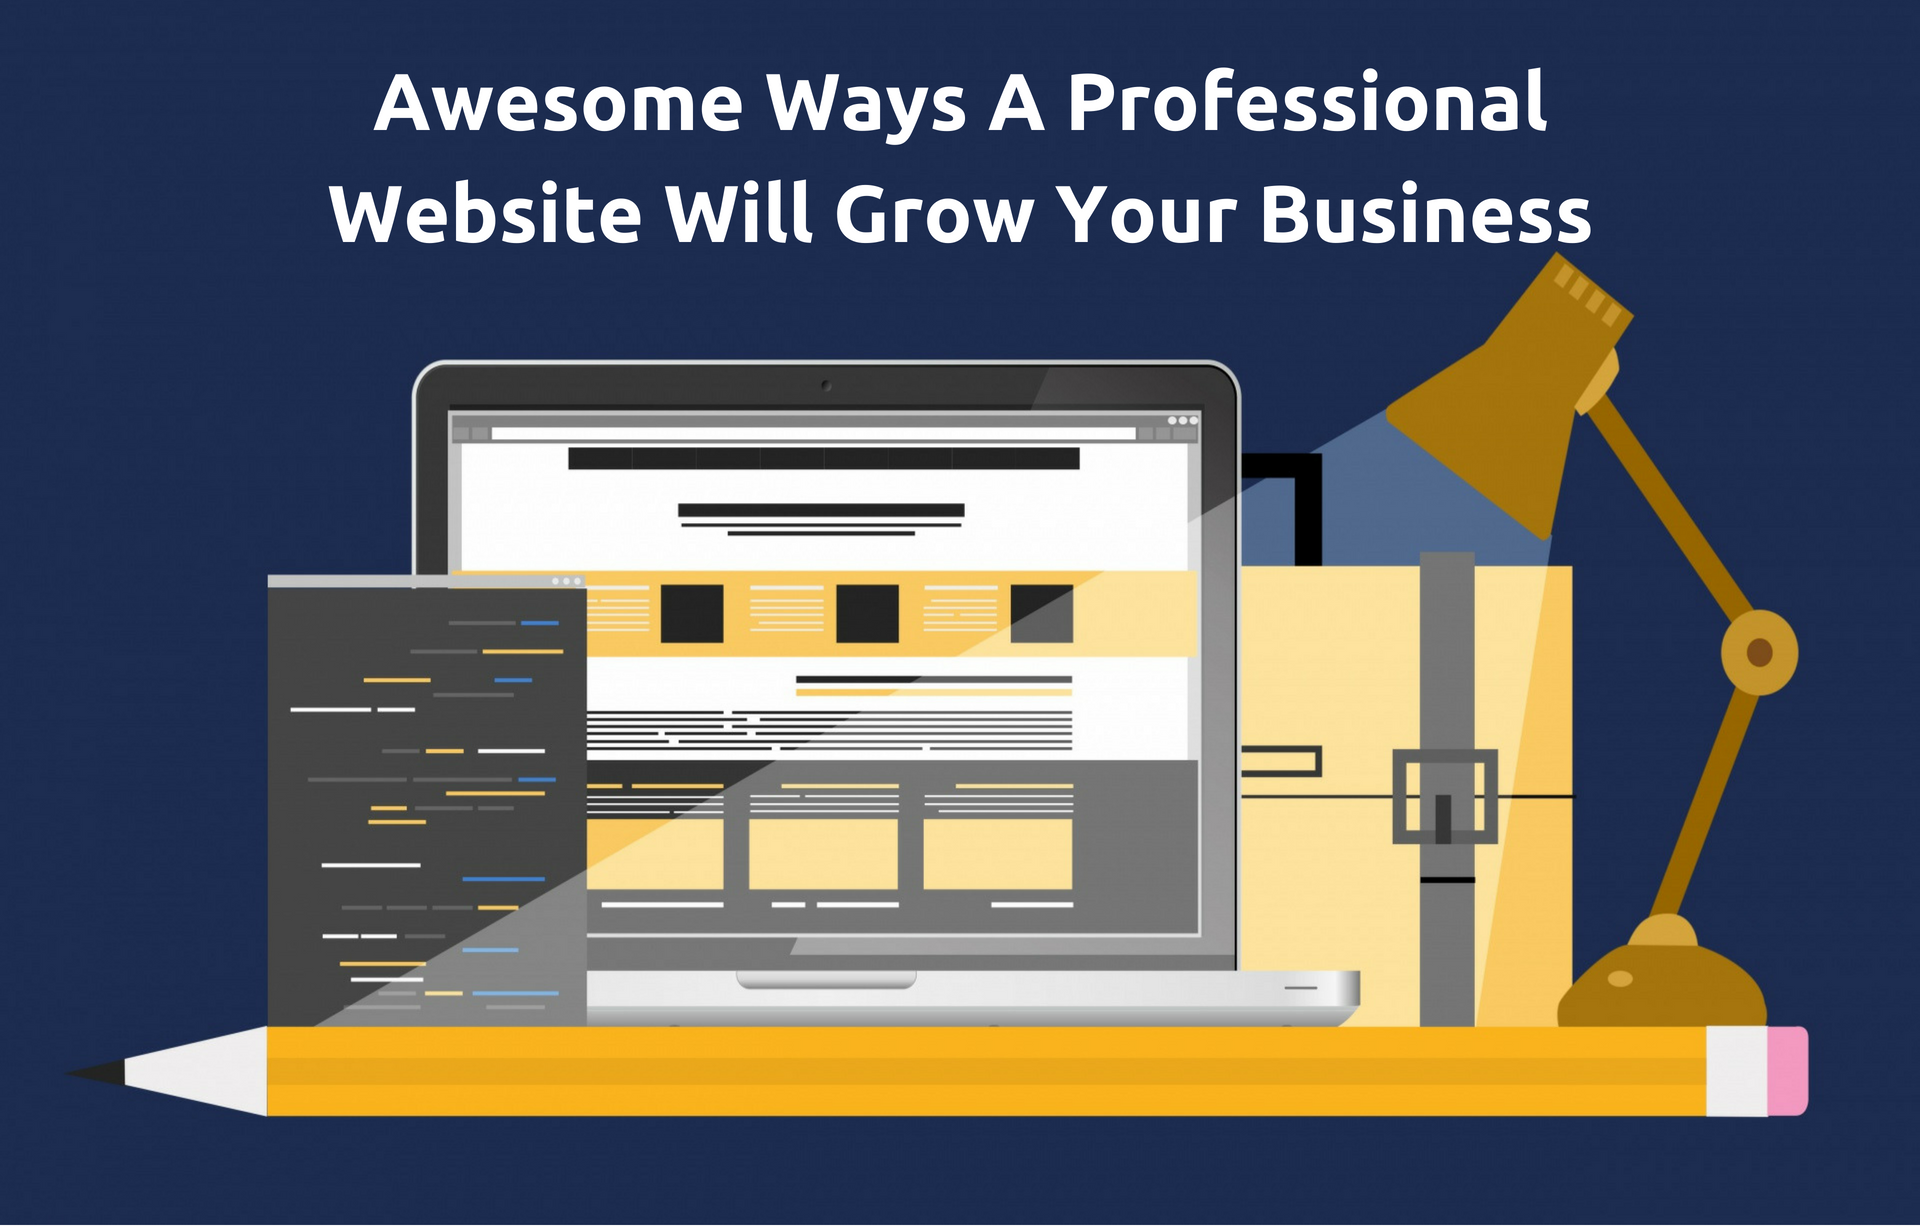 awesome ways website will grow business